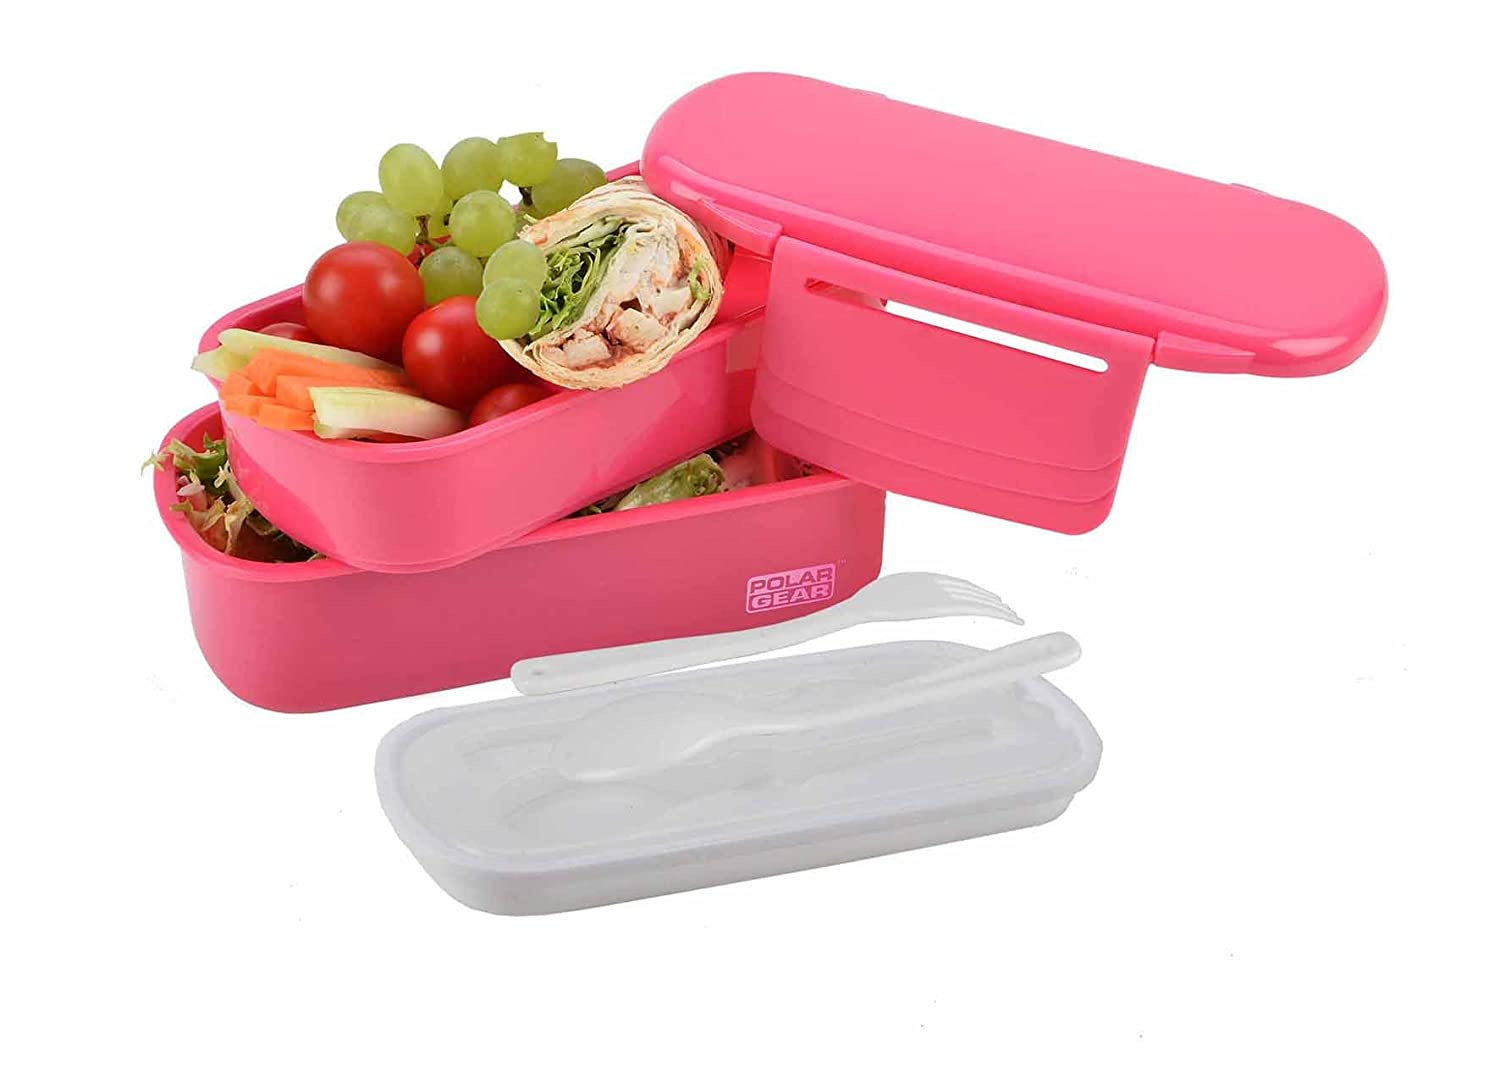 Polar Gear Bento Lunch Box, Berry, 1.1 Litre 1.1 Litre DNC UK LTD 965 594